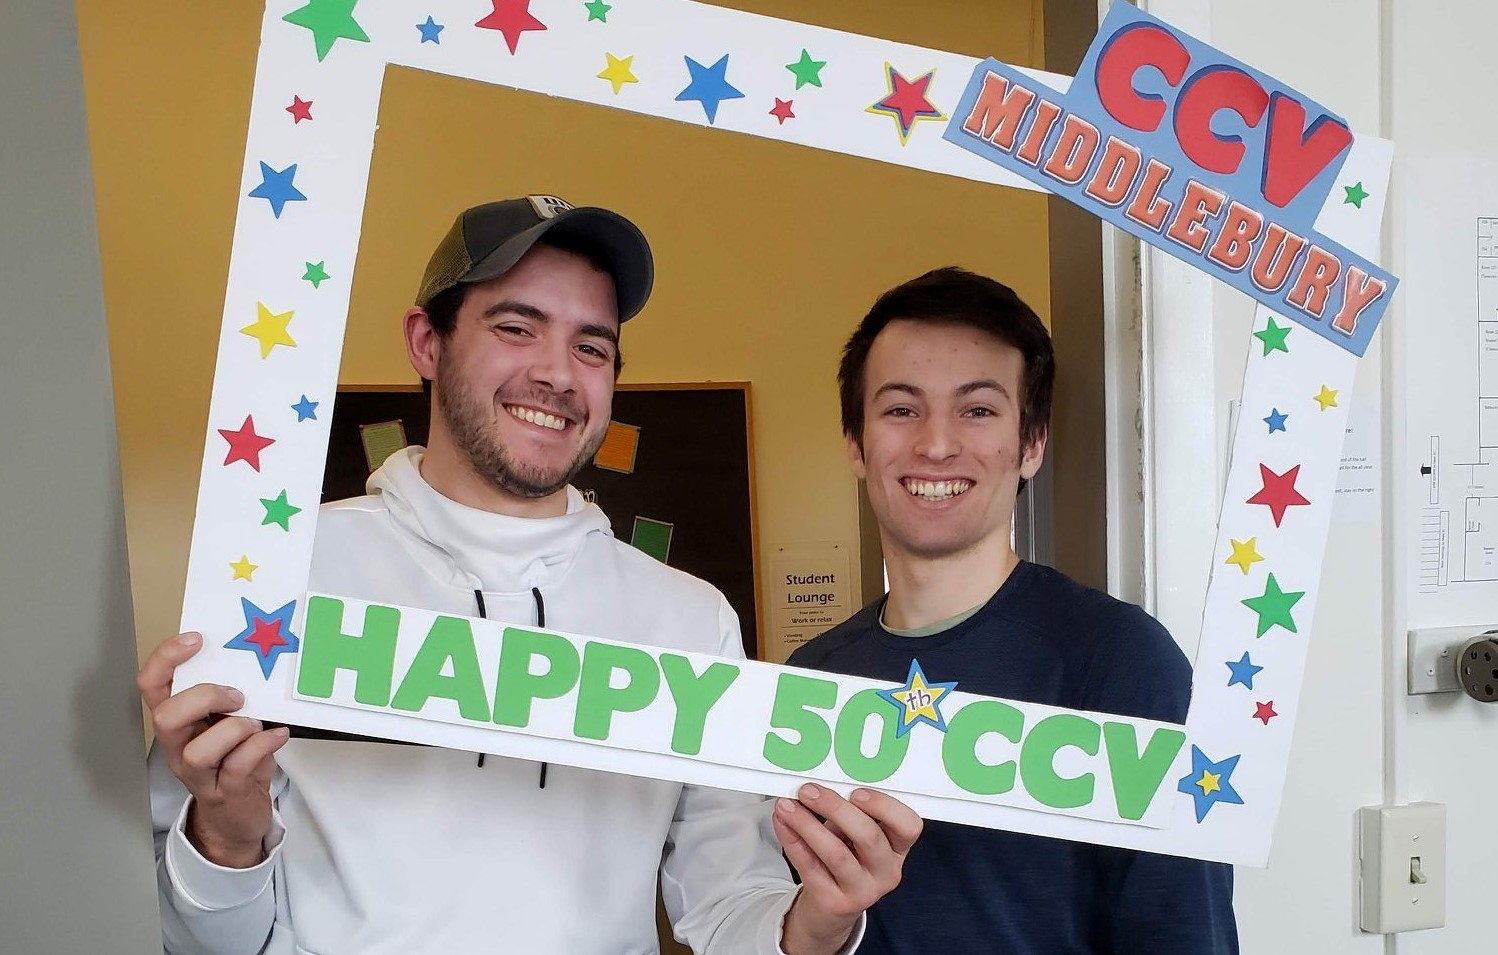 Students __ and __ celebrate CCV's 50th anniversary at CCV-Middlebury